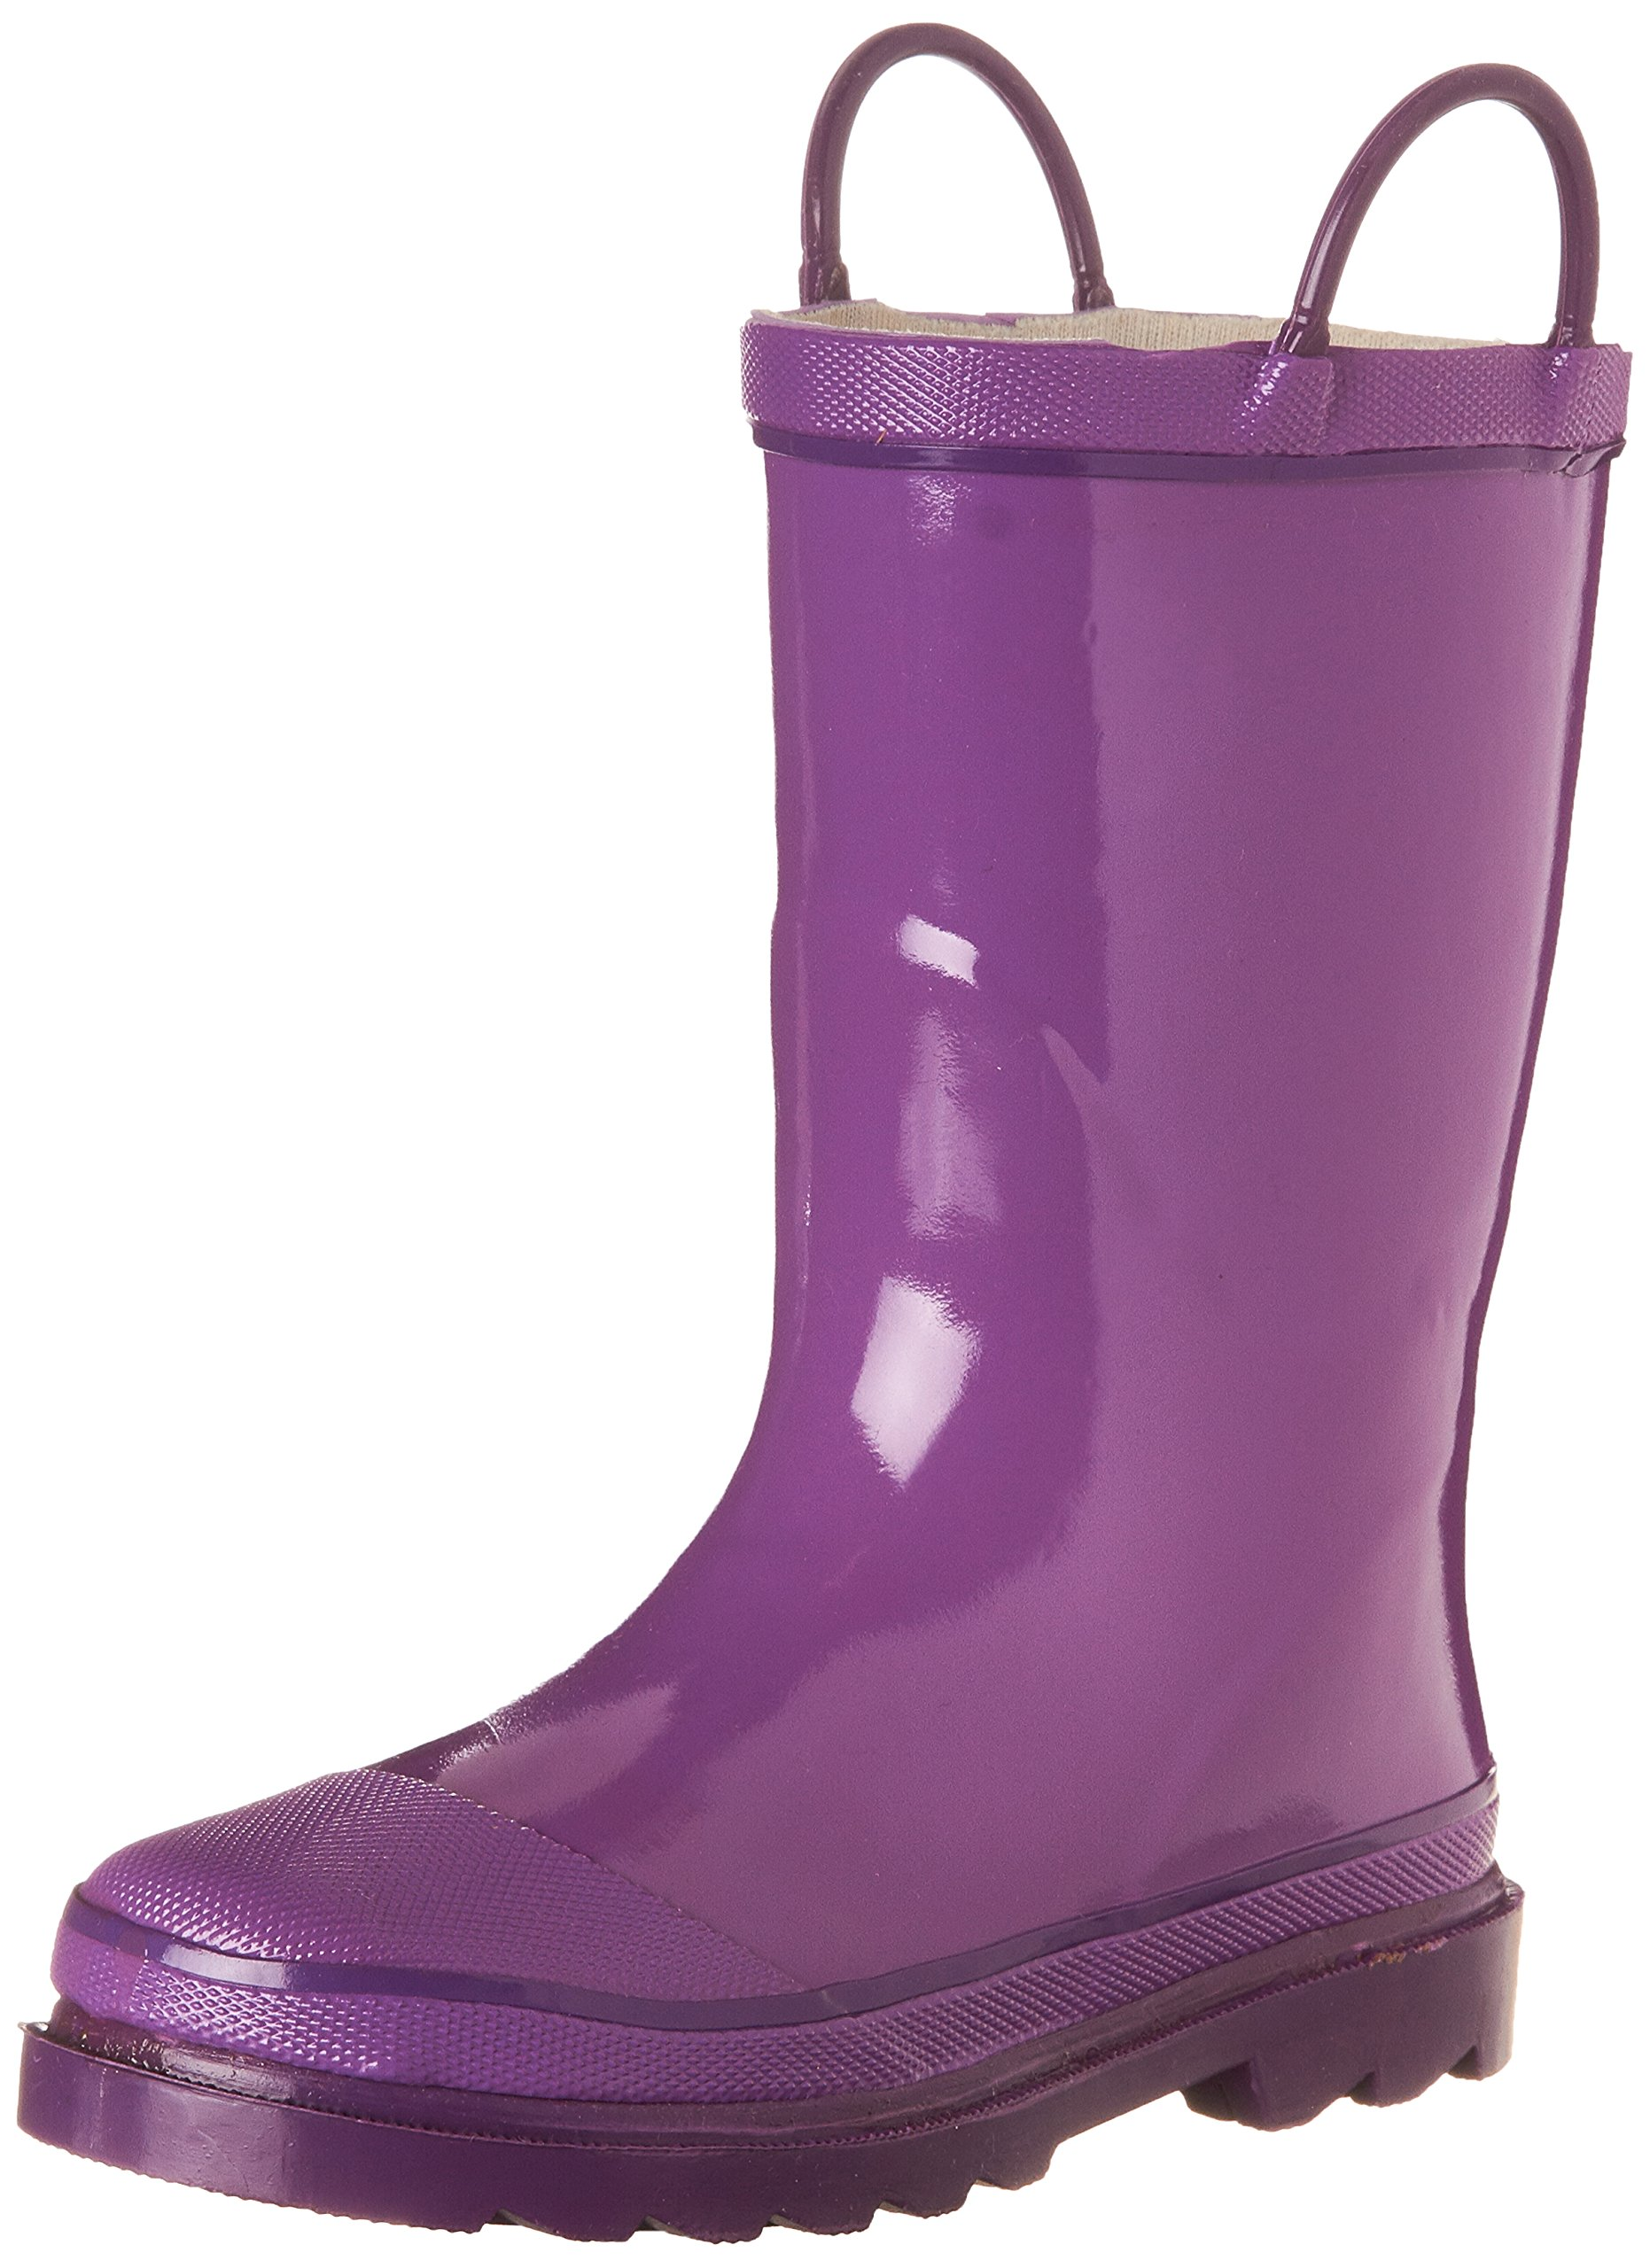 Western Chief Kids Waterproof Rubber Classic Rain Boot with Pull Handles, Grape, 6 M US Toddler